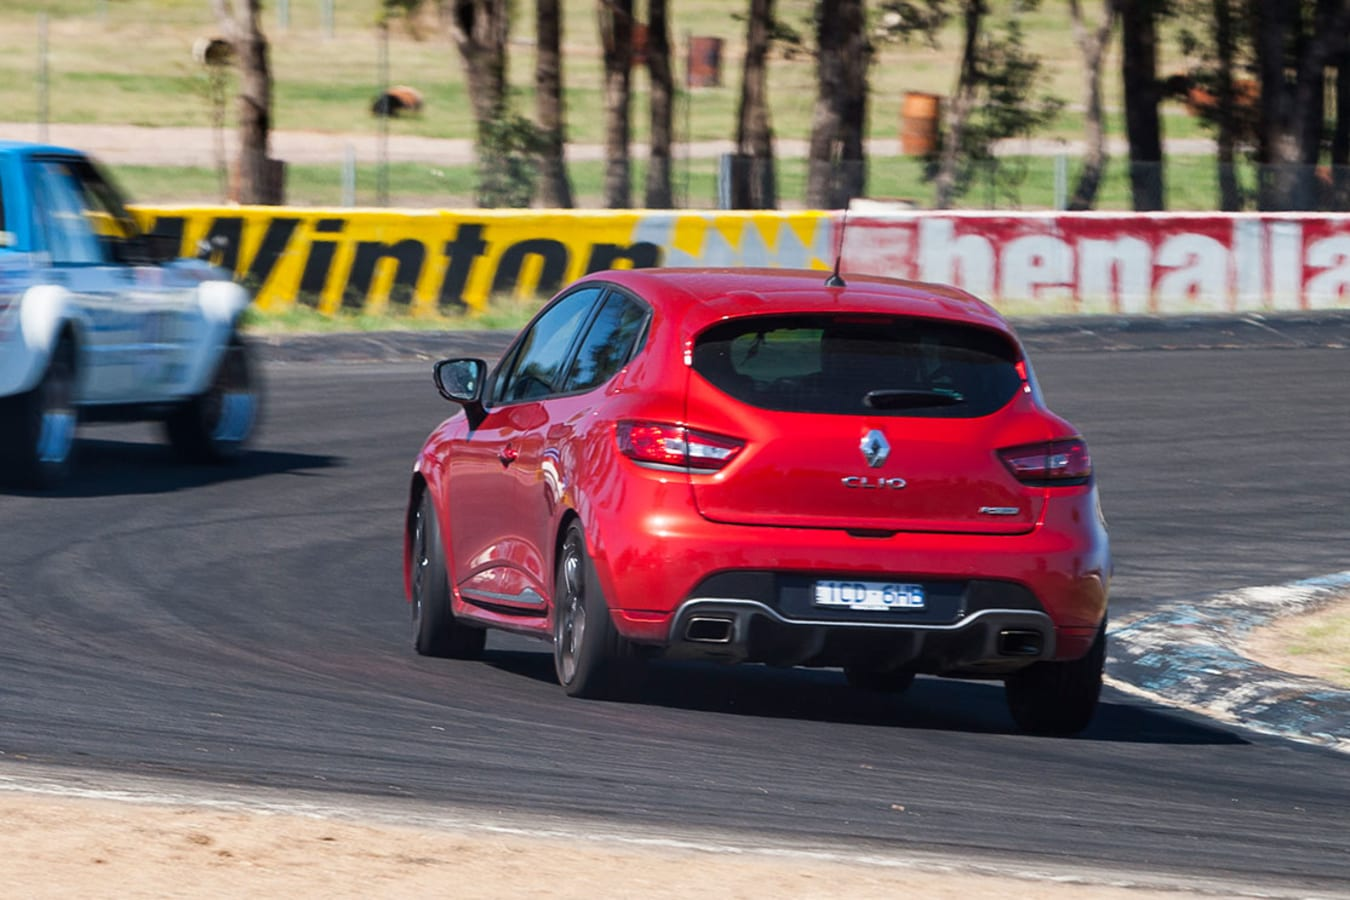 Clio Rs 200 Embed Jpg